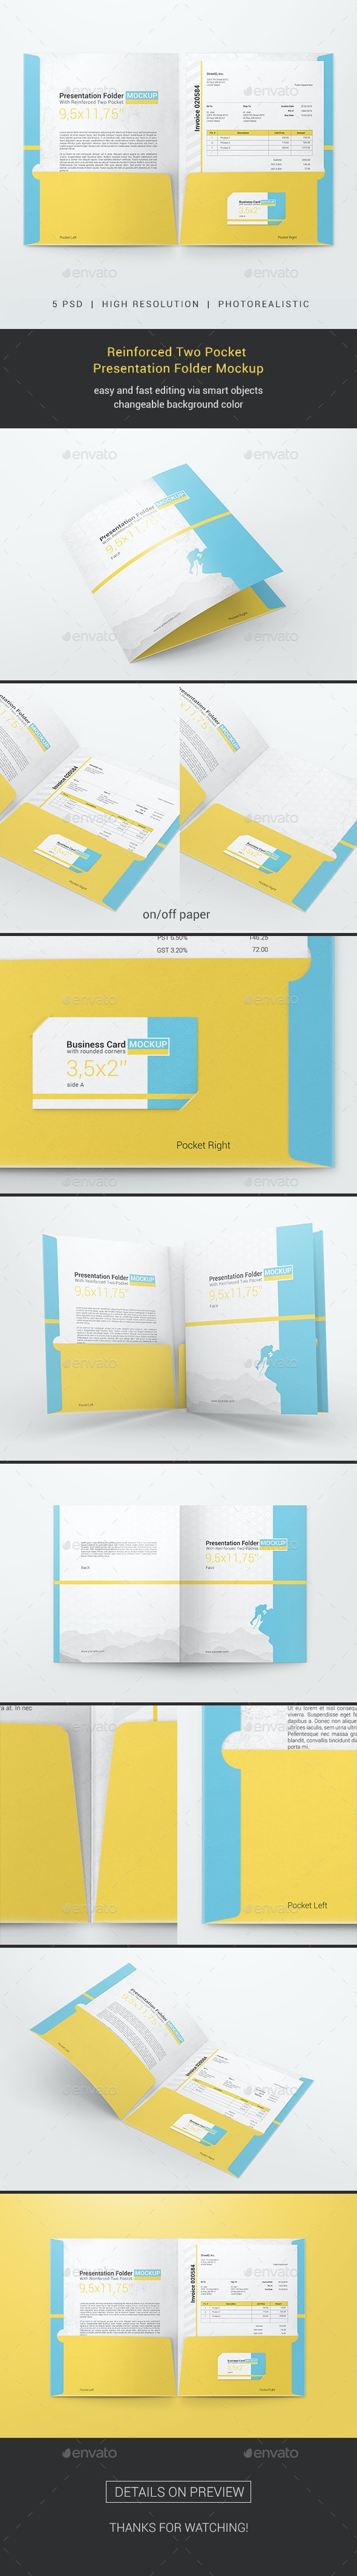 Reinforced Two Pocket Presentation Folder Mockup - Miscellaneous Print